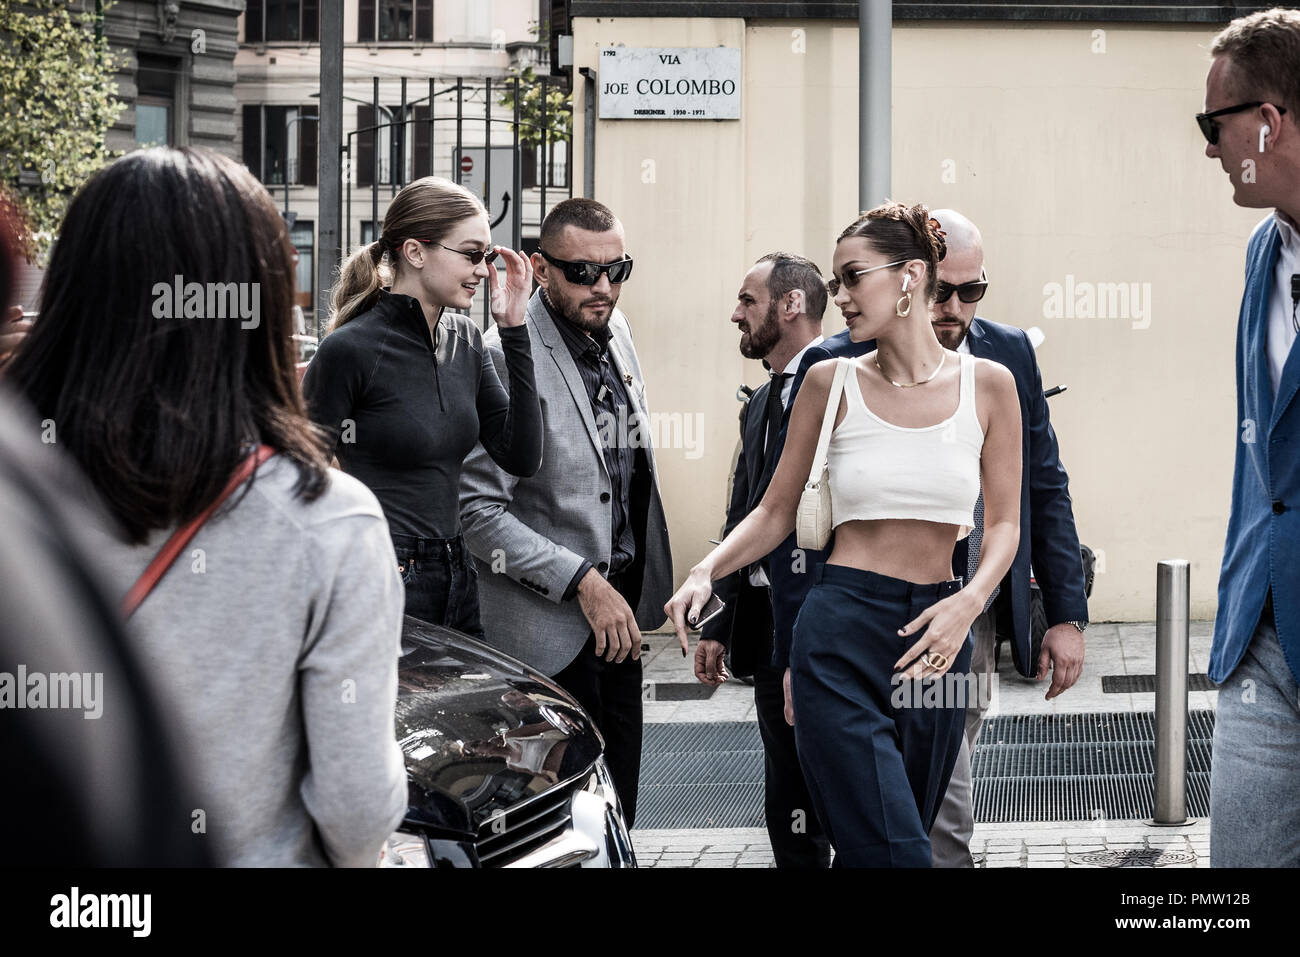 Milan, Italy. 19th sep, 2018. Gigi and Bella Hadid arrive at Alberta Ferretti fashion show for the Milan fashion week in Milan, Italy. Credit: Marco Aprile/Alamy Live Credit: Marco Aprile/Alamy Live News - Stock Image